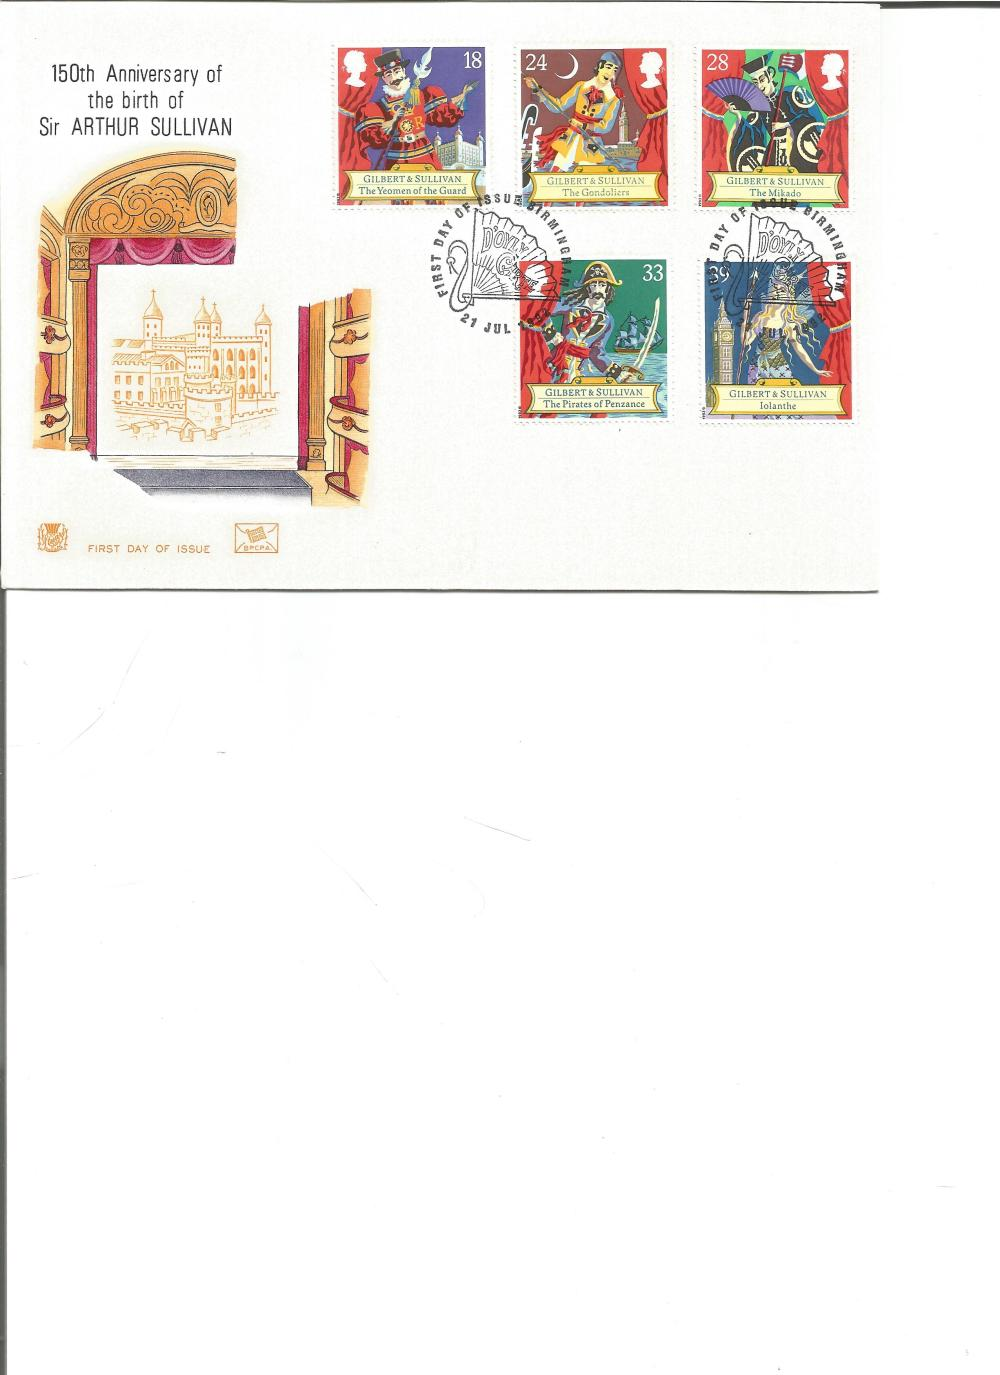 FDC 150TH Anniversary of the birth of Sir Arthur Sullivan c/w set of five commemorative stamps,